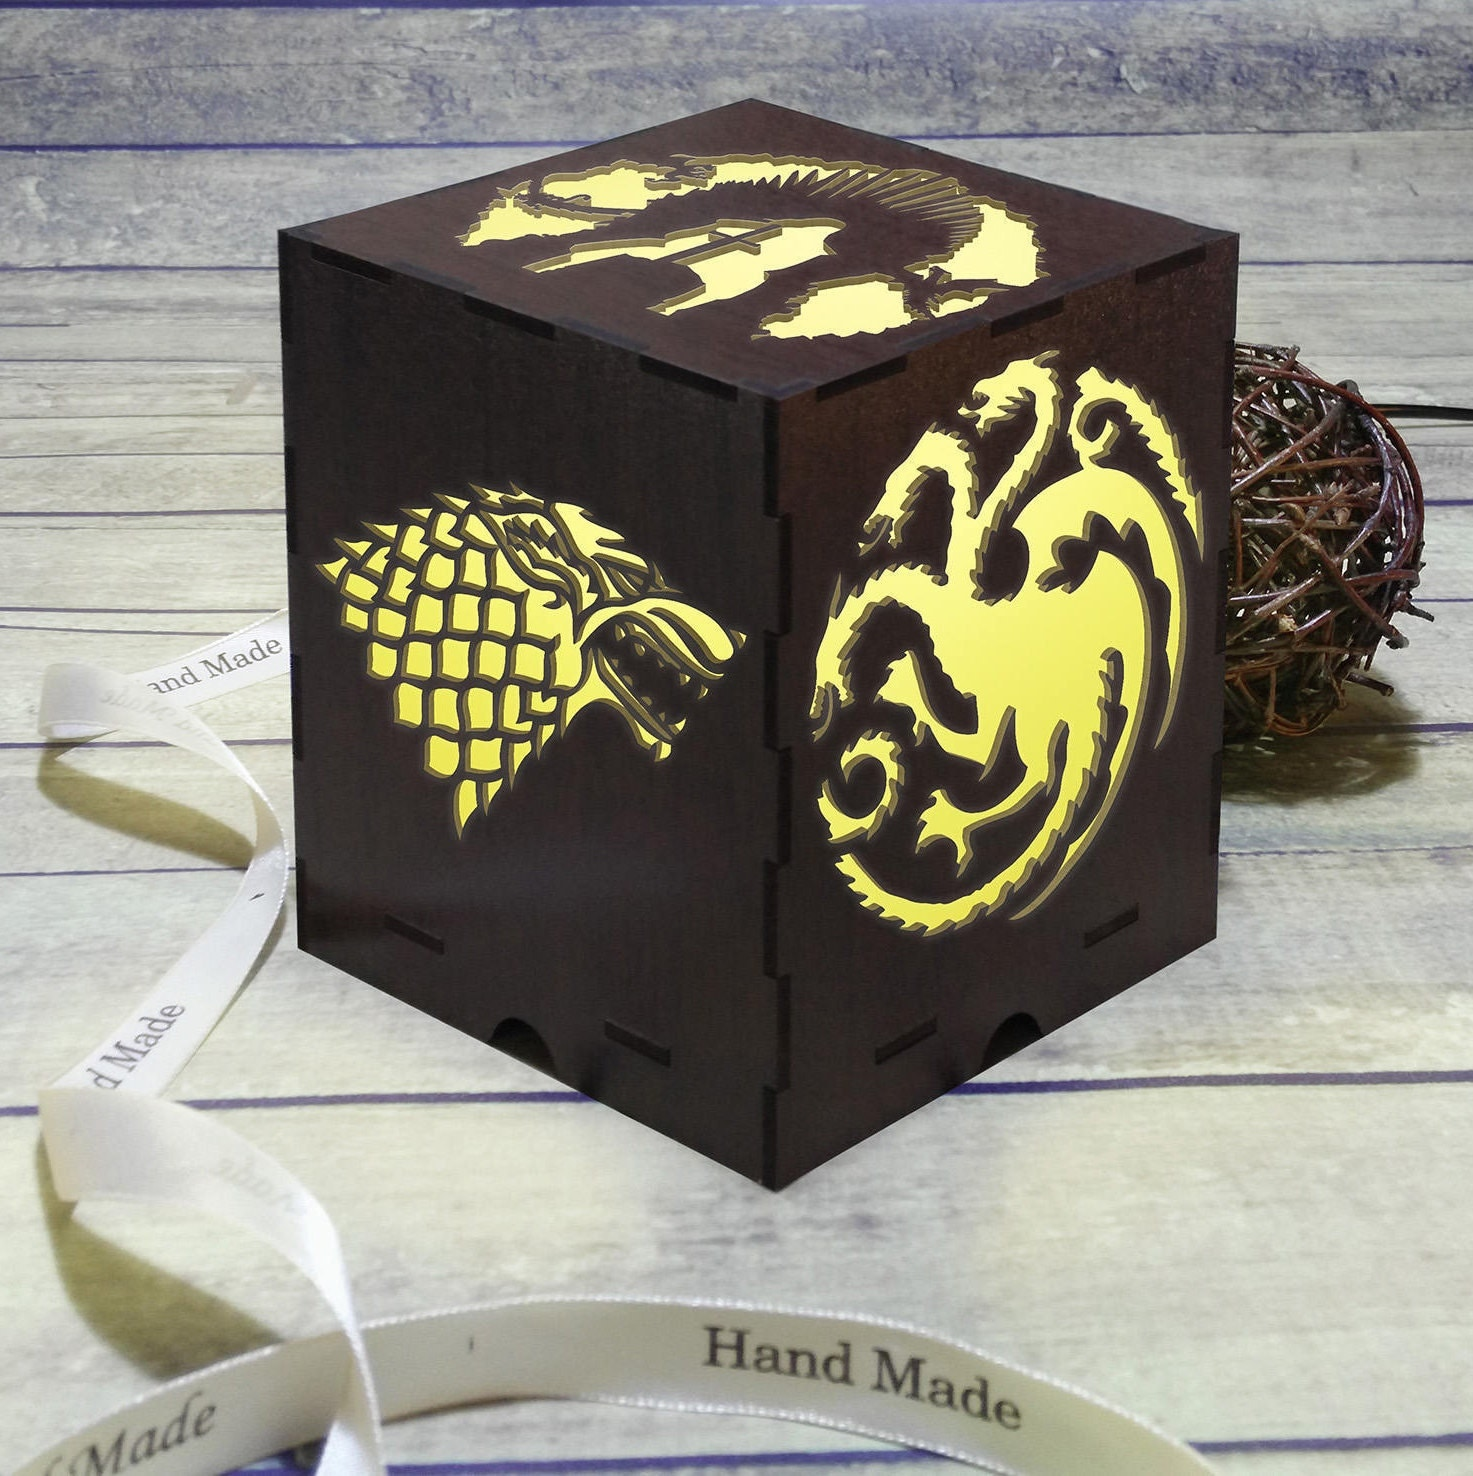 game of thrones gift for men game of thrones gift for women